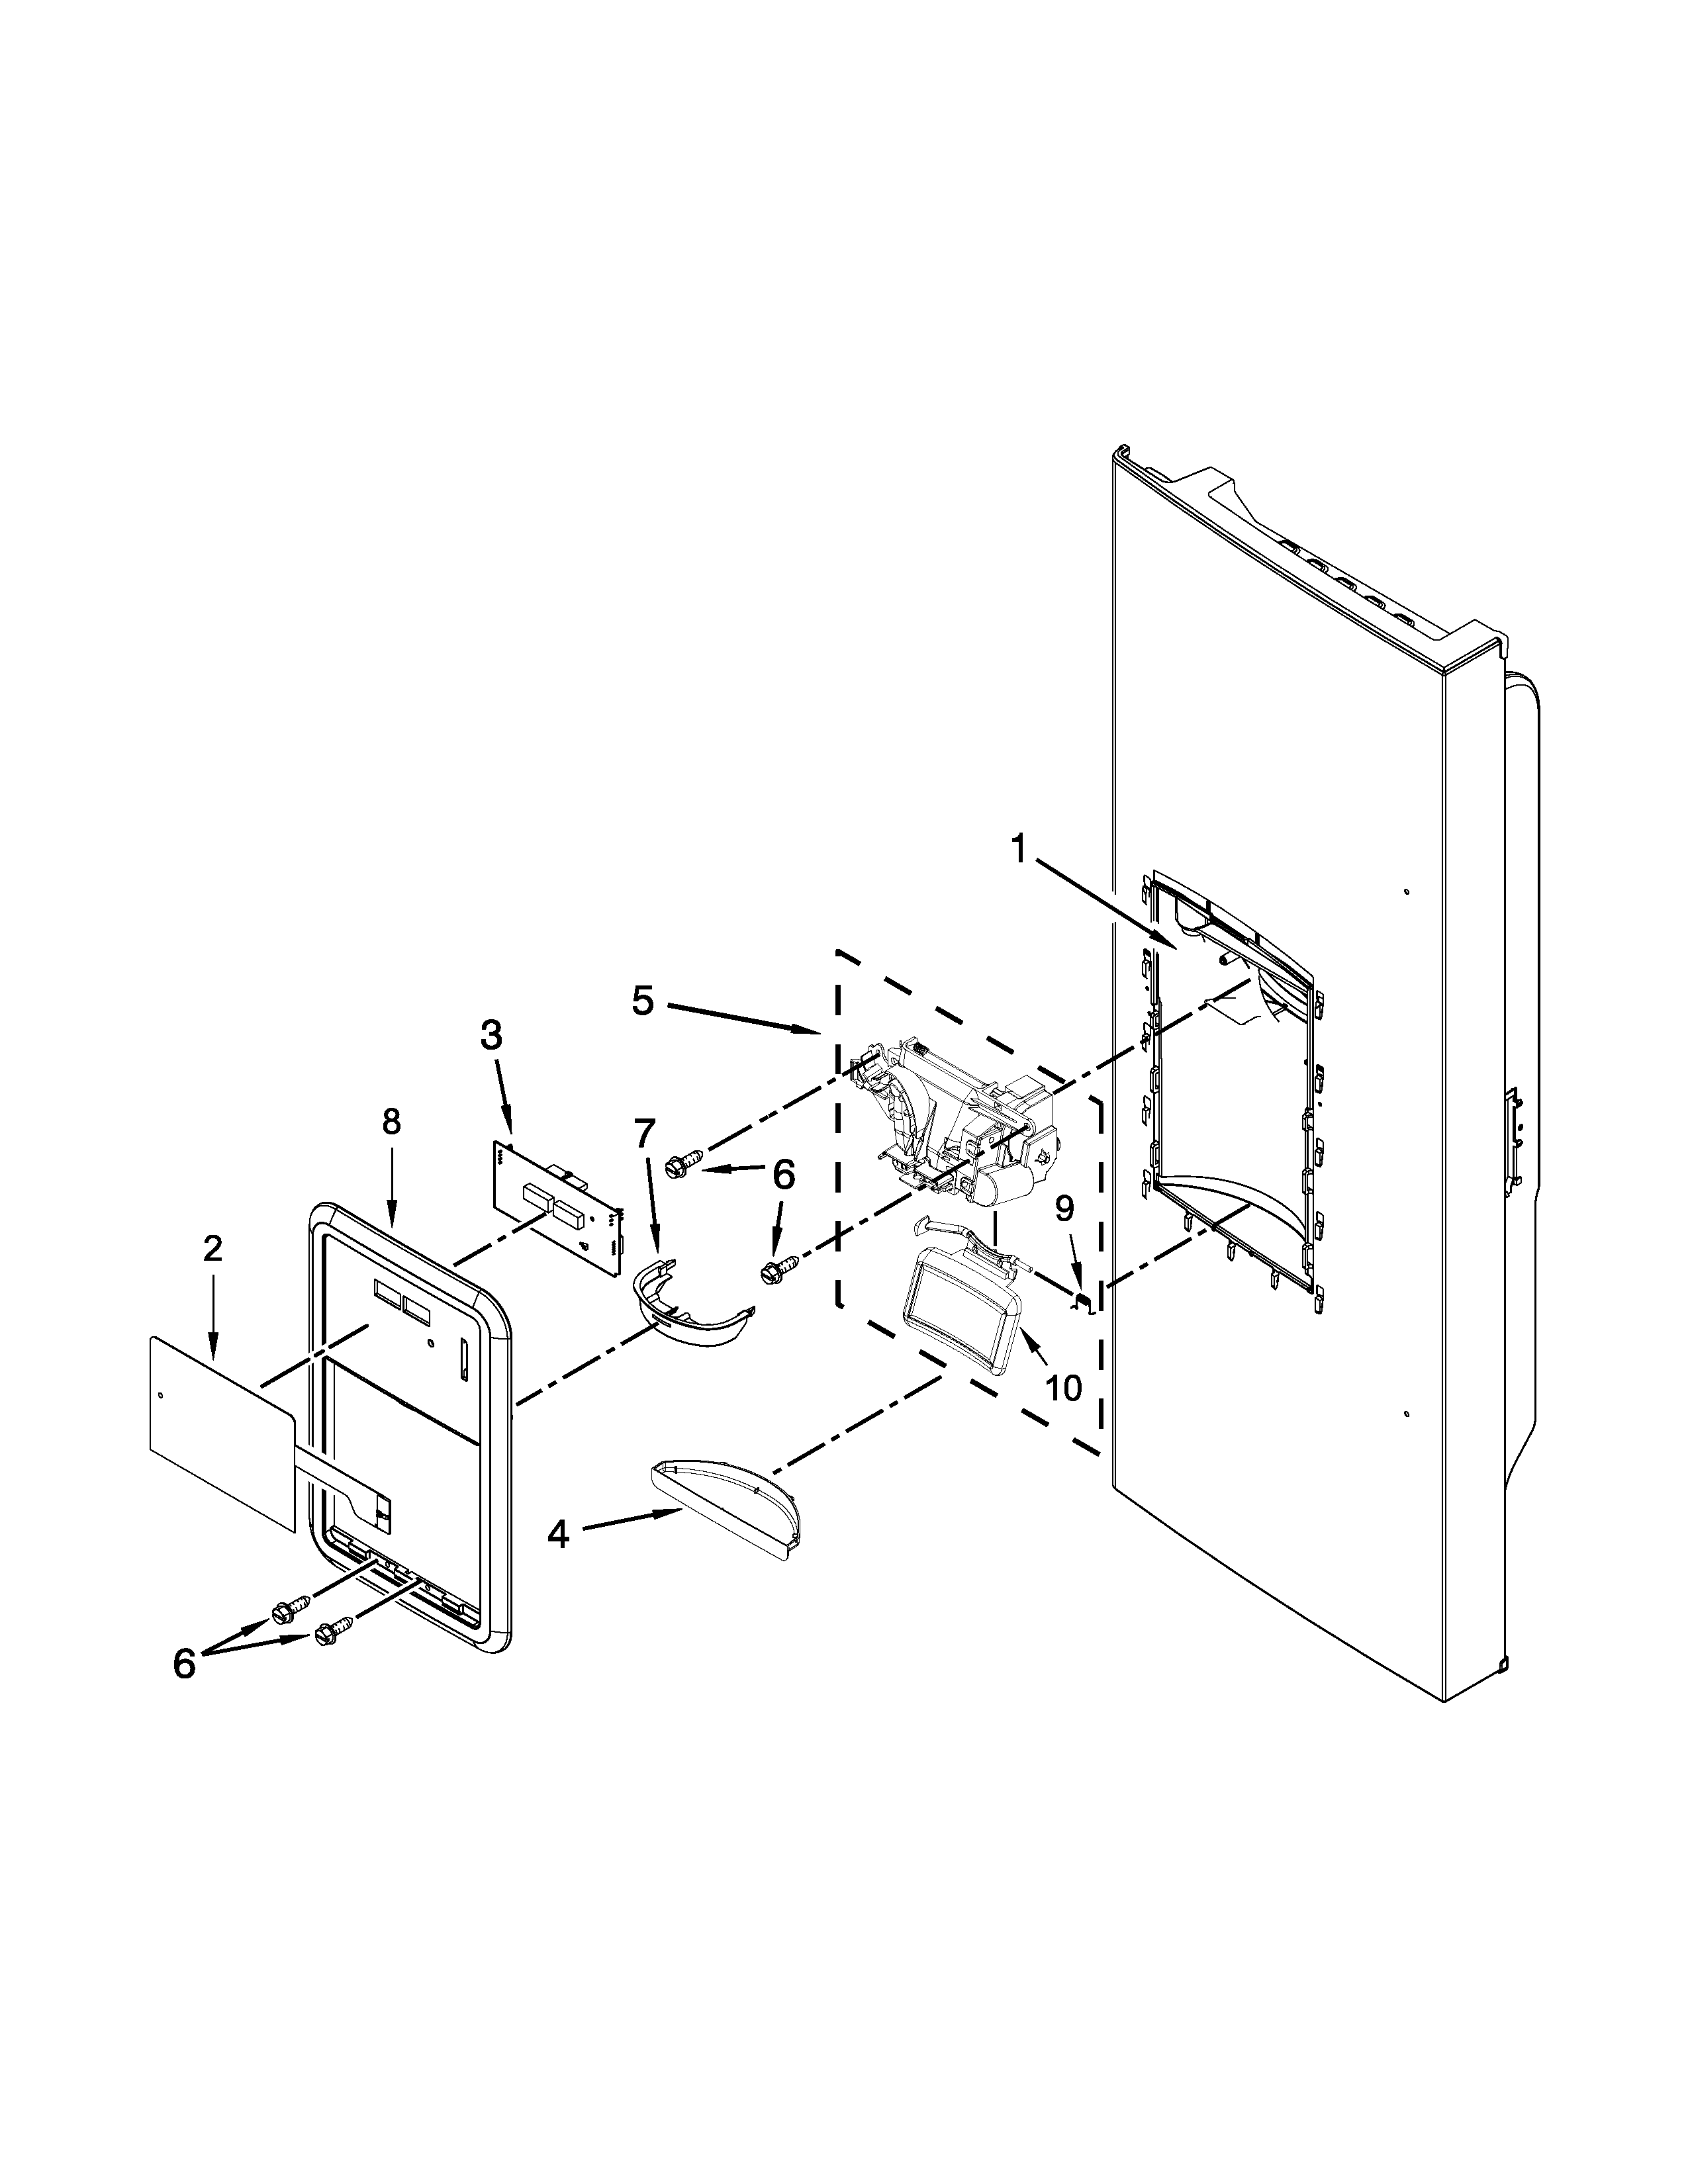 Maytag MFI2269FRE00 dispenser front parts diagram